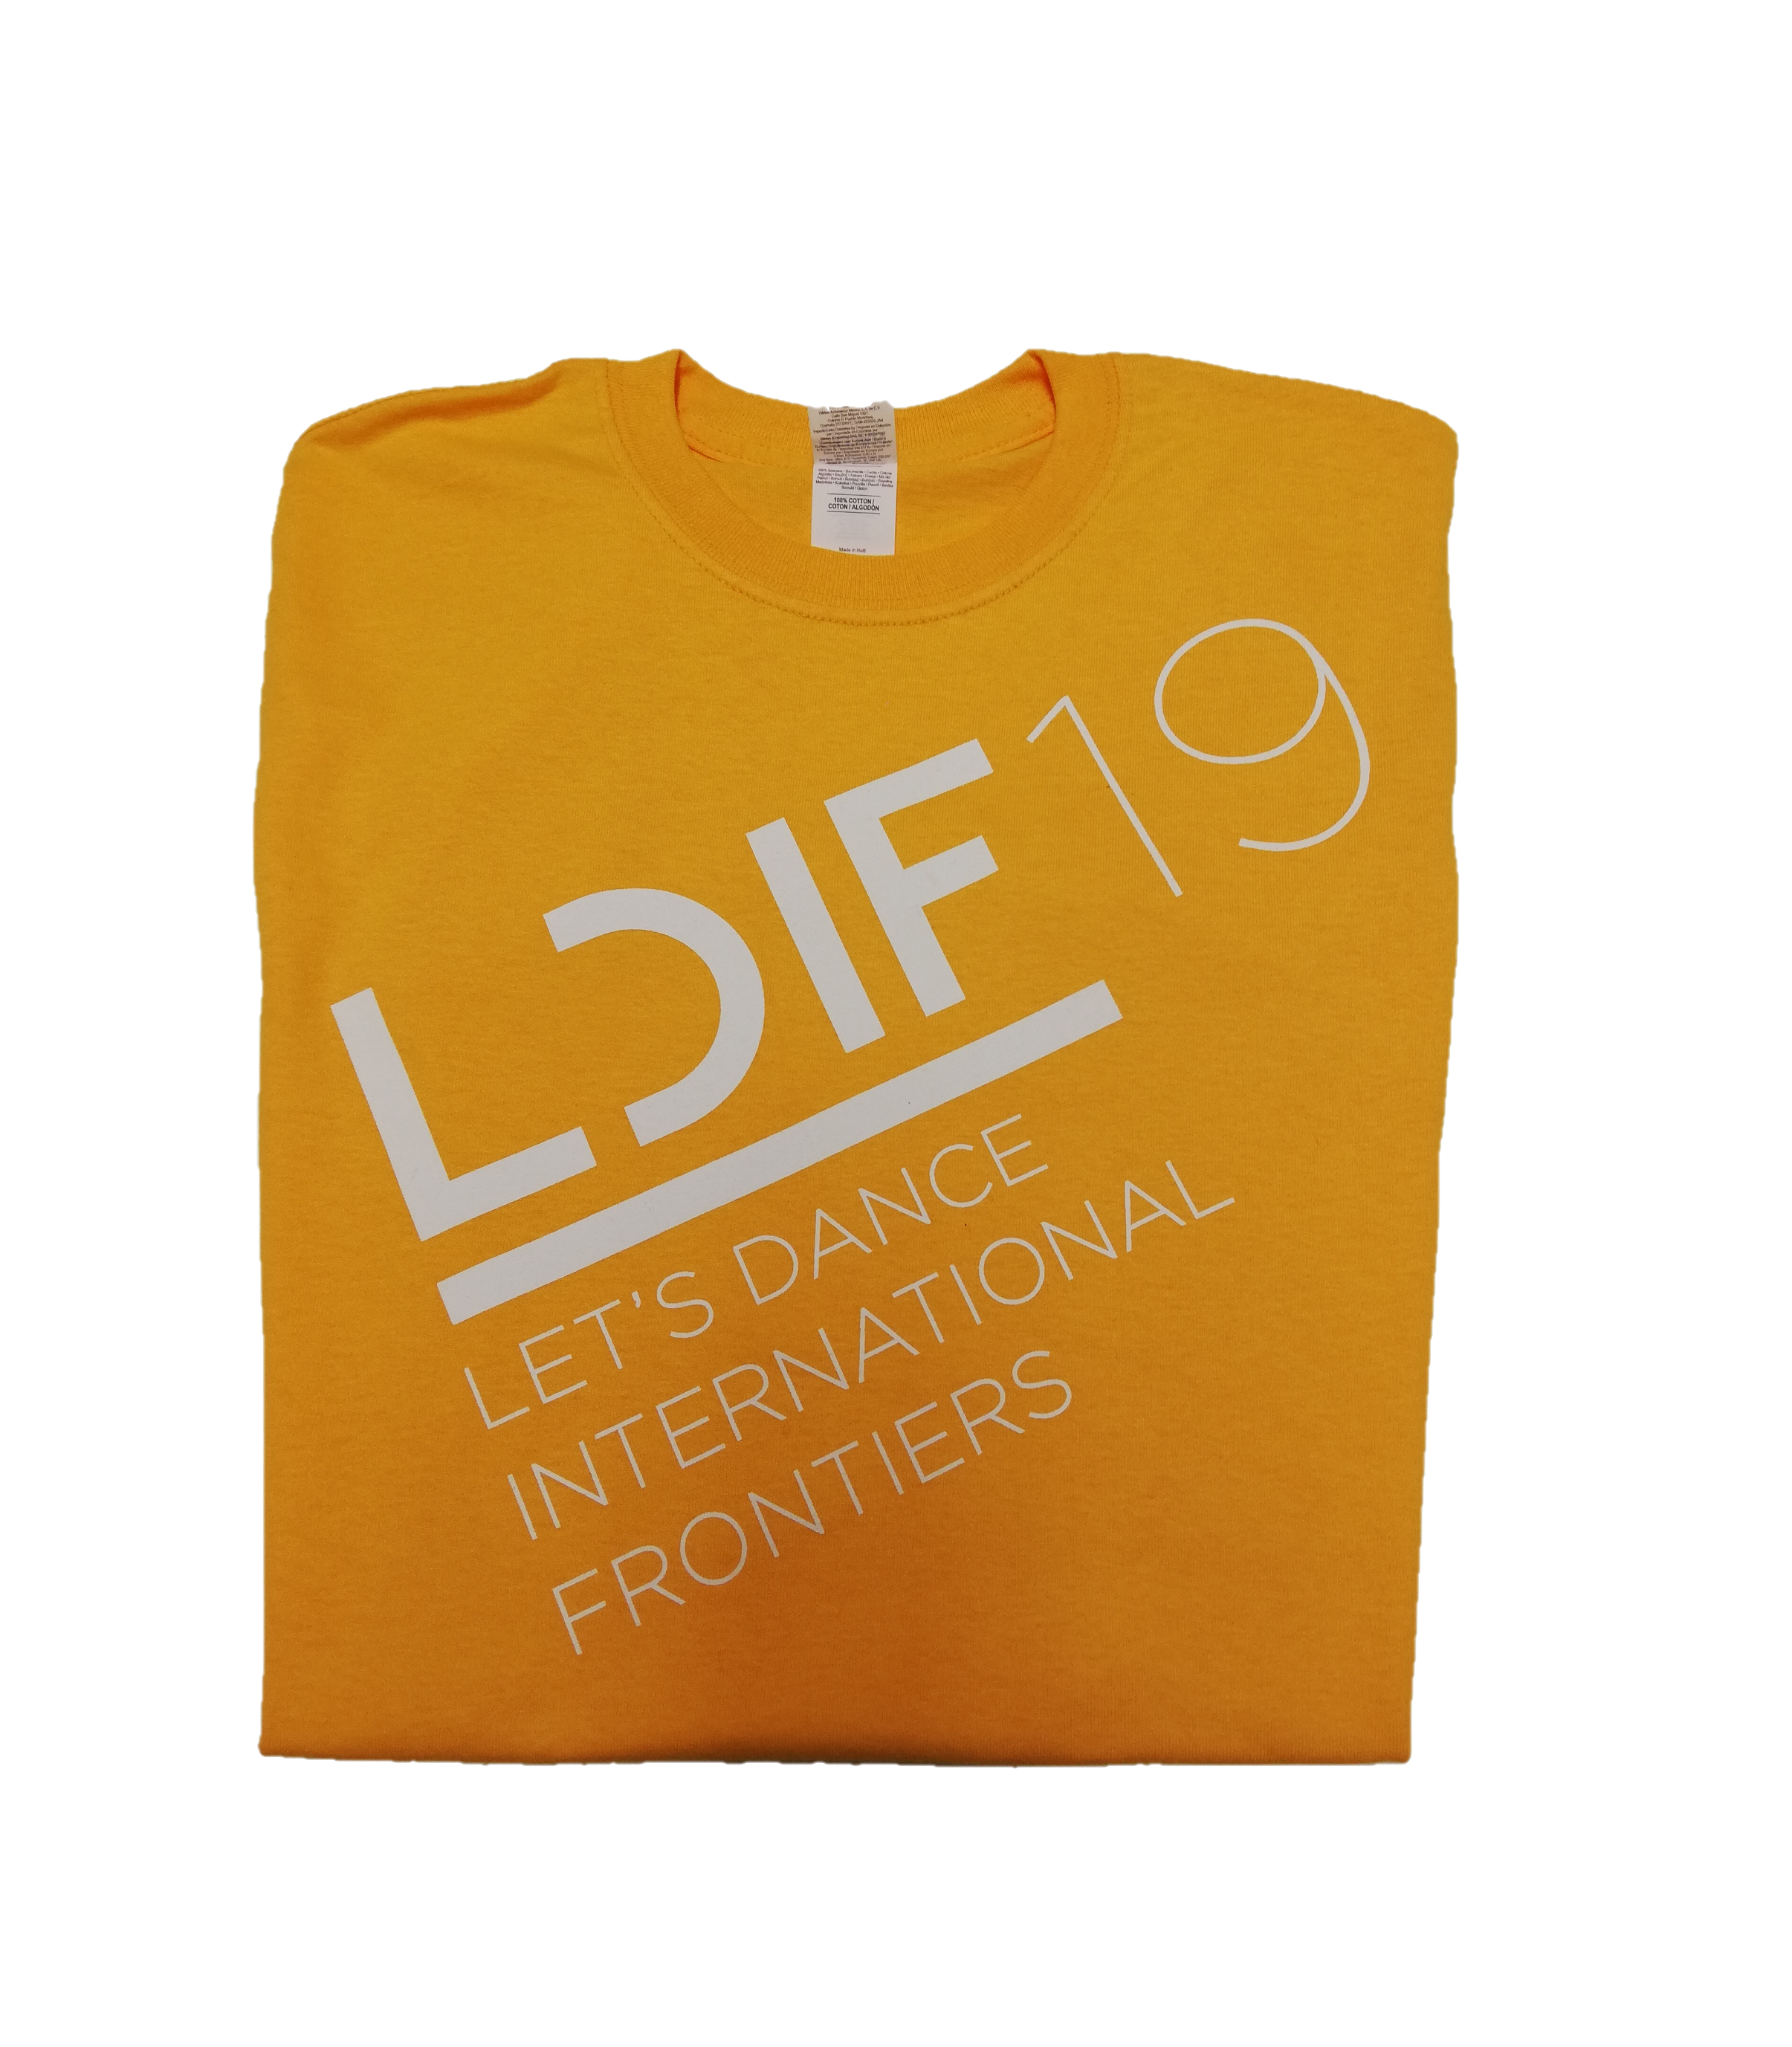 LDIF19 T-Shirt — Page Banner